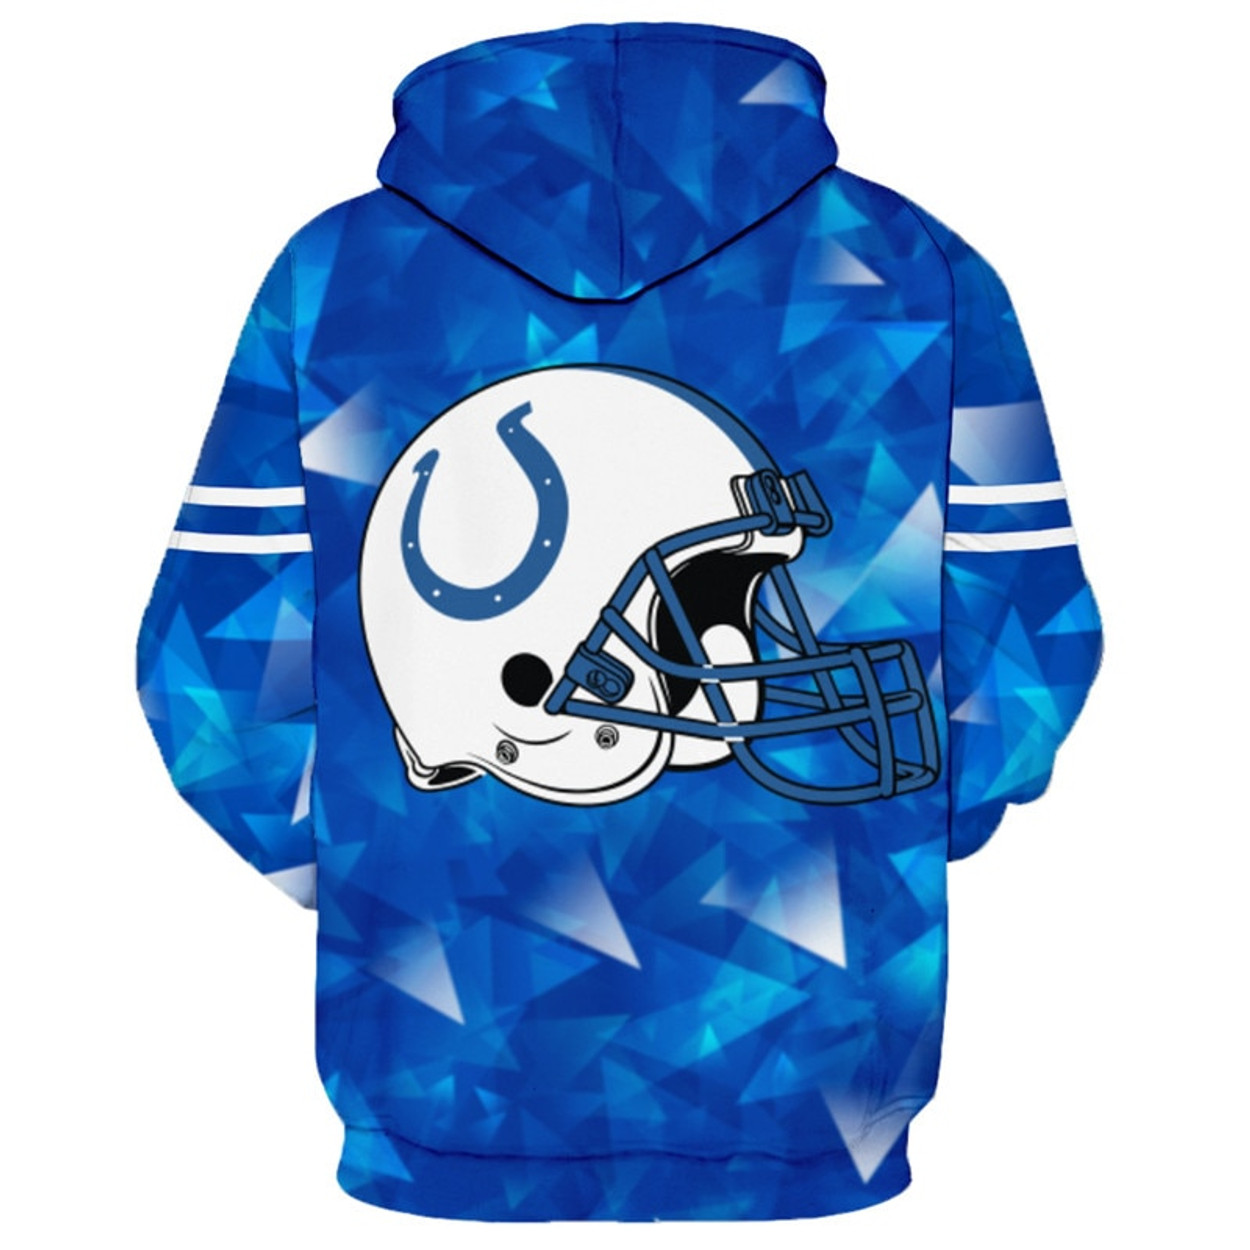 e2afbf8ae ... INDIANAPOLIS-COLTS-TEAM-HOODIES  NICE-CUSTOM-DETAILED-3D-GRAPHIC-PRINTED PREMIUM-ALL-OVER-DOUBLE-SIDED-PRINT OFFICIAL- COLTS-TEAM-COLORS ...